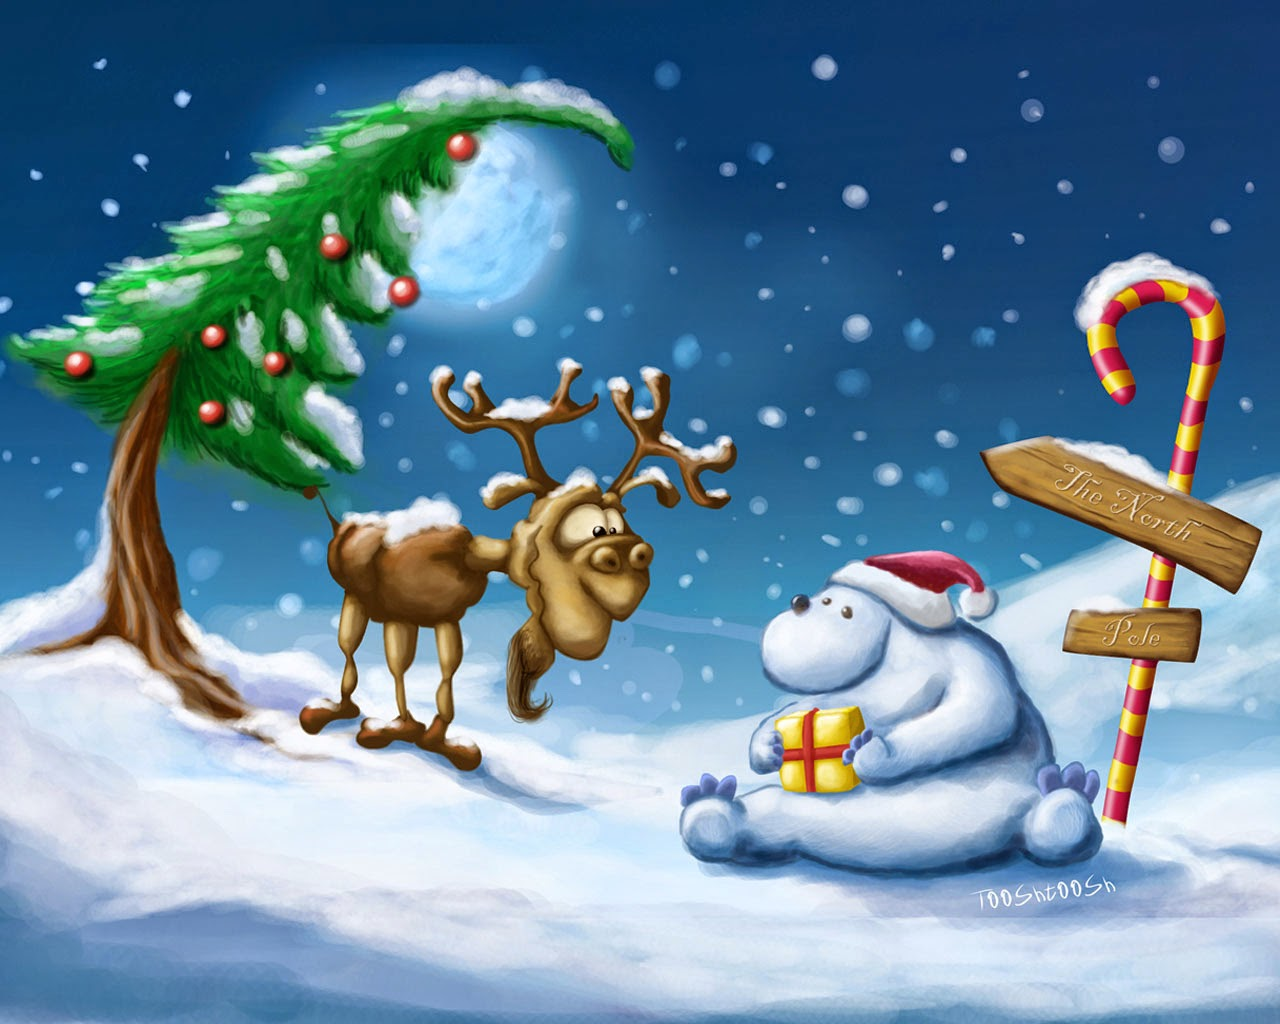 reindeer-and-snowman-chat-in-snow-near-xmas-tree-christmas-cartoon-wallpaper.jpg